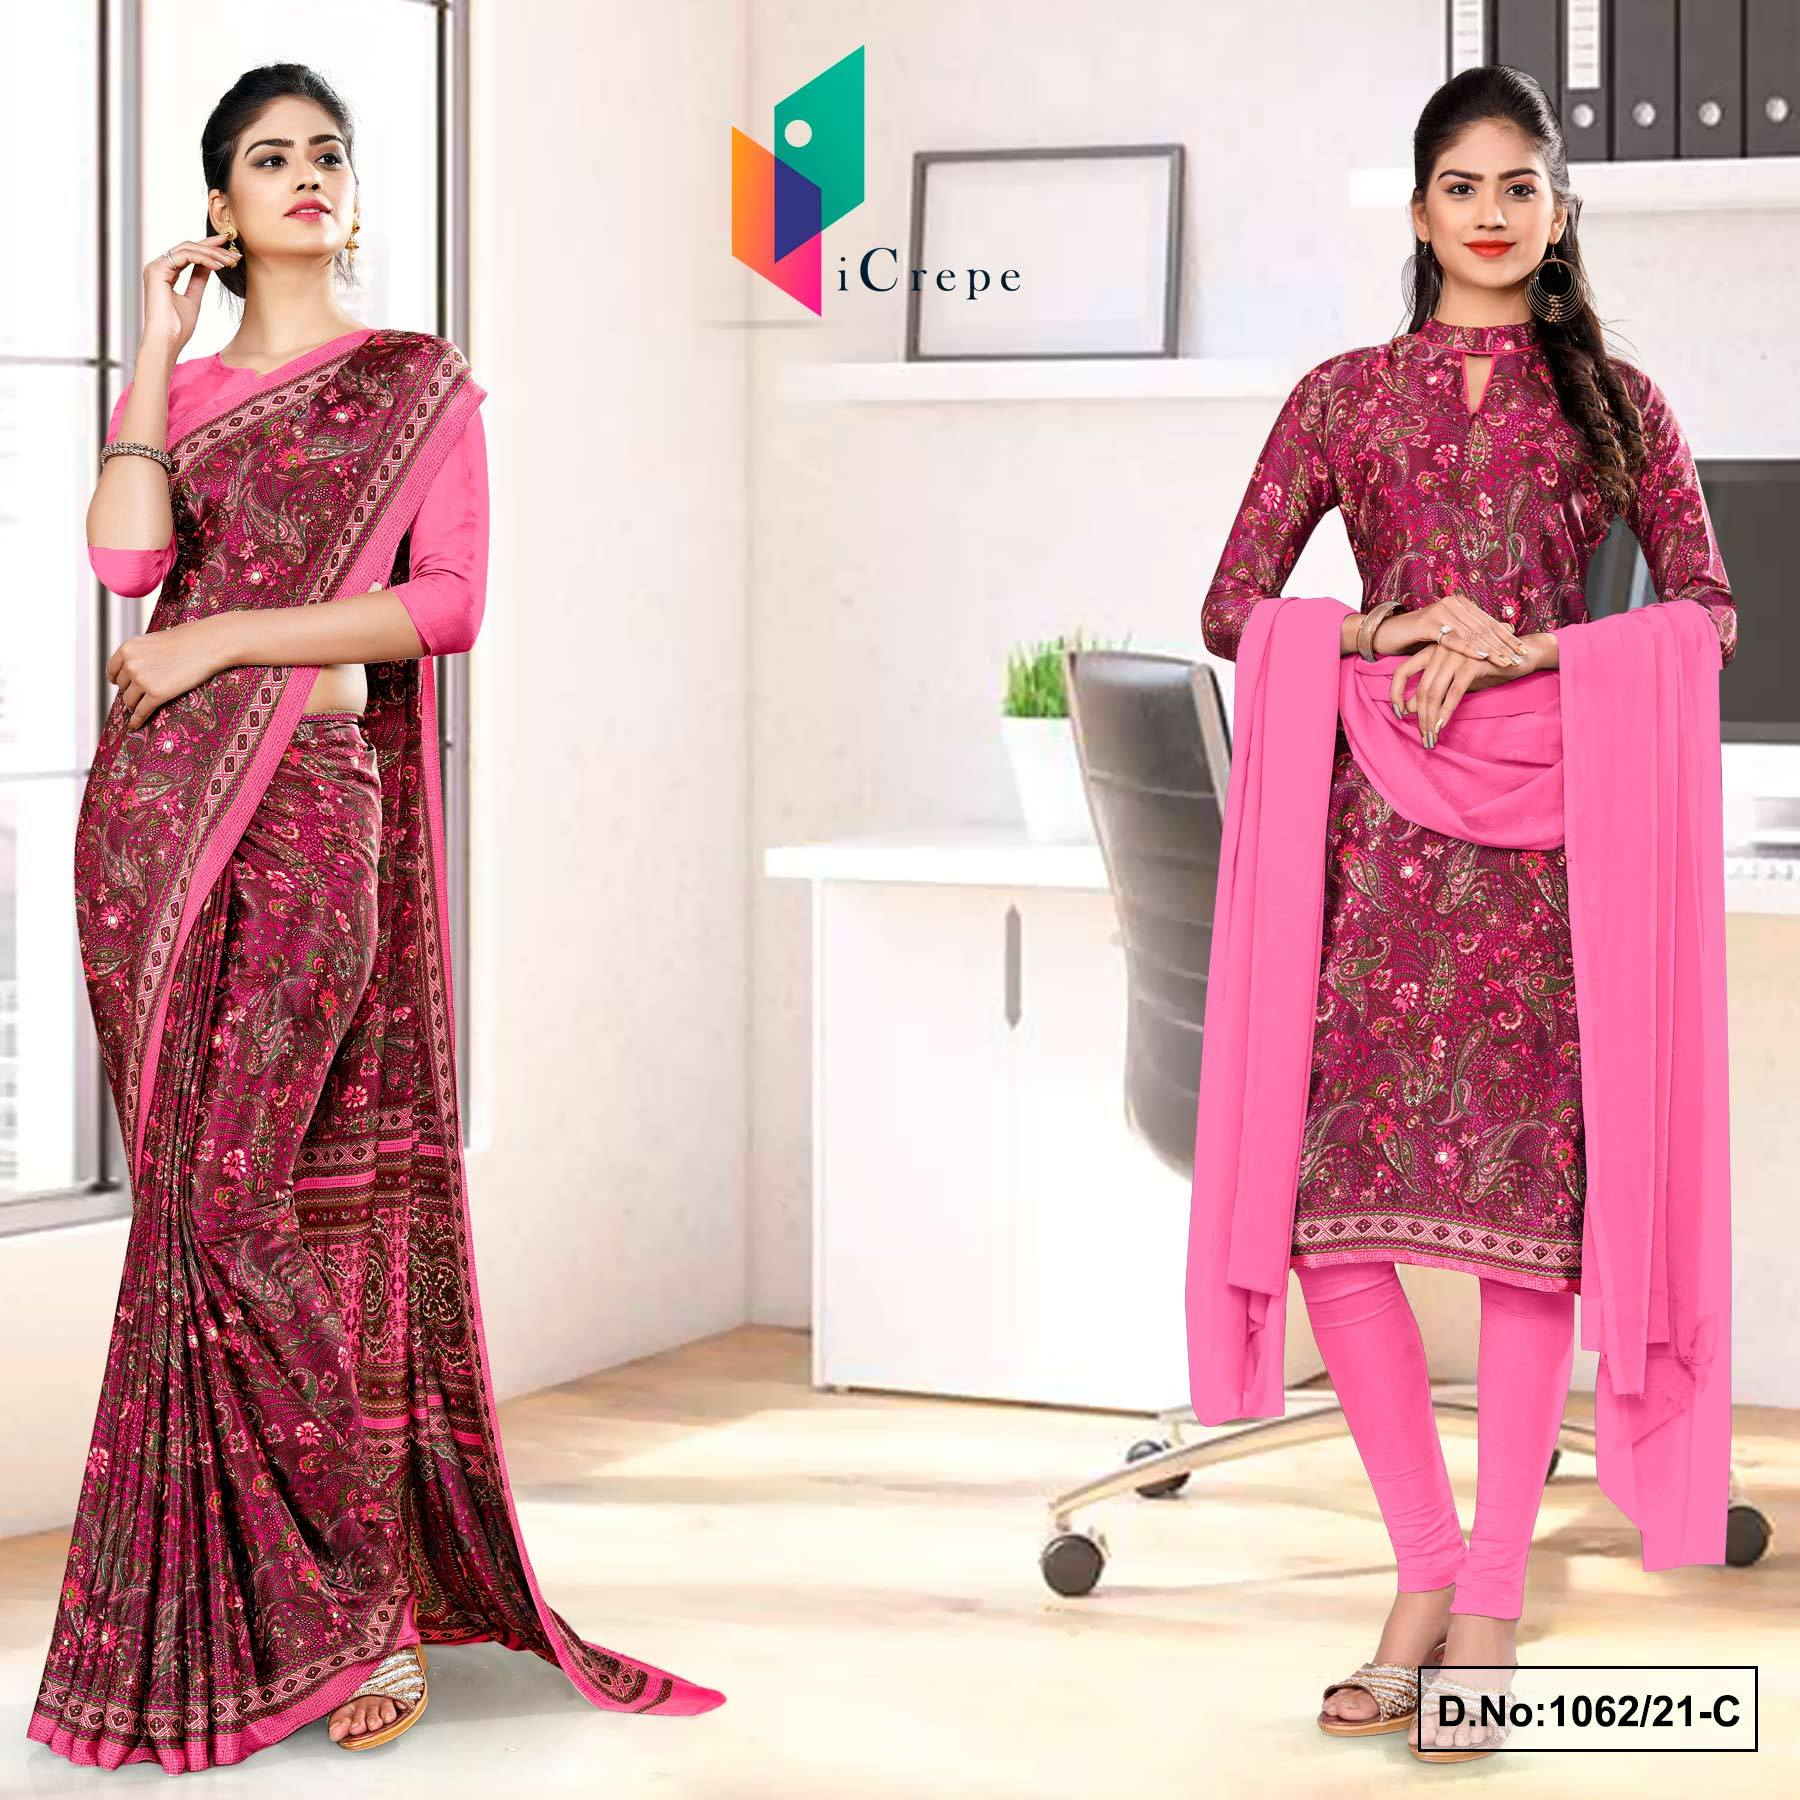 Wine Pink Paisley Print Premium Italian Silk Crepe Uniform Saree Salwar Combo for School Teachers